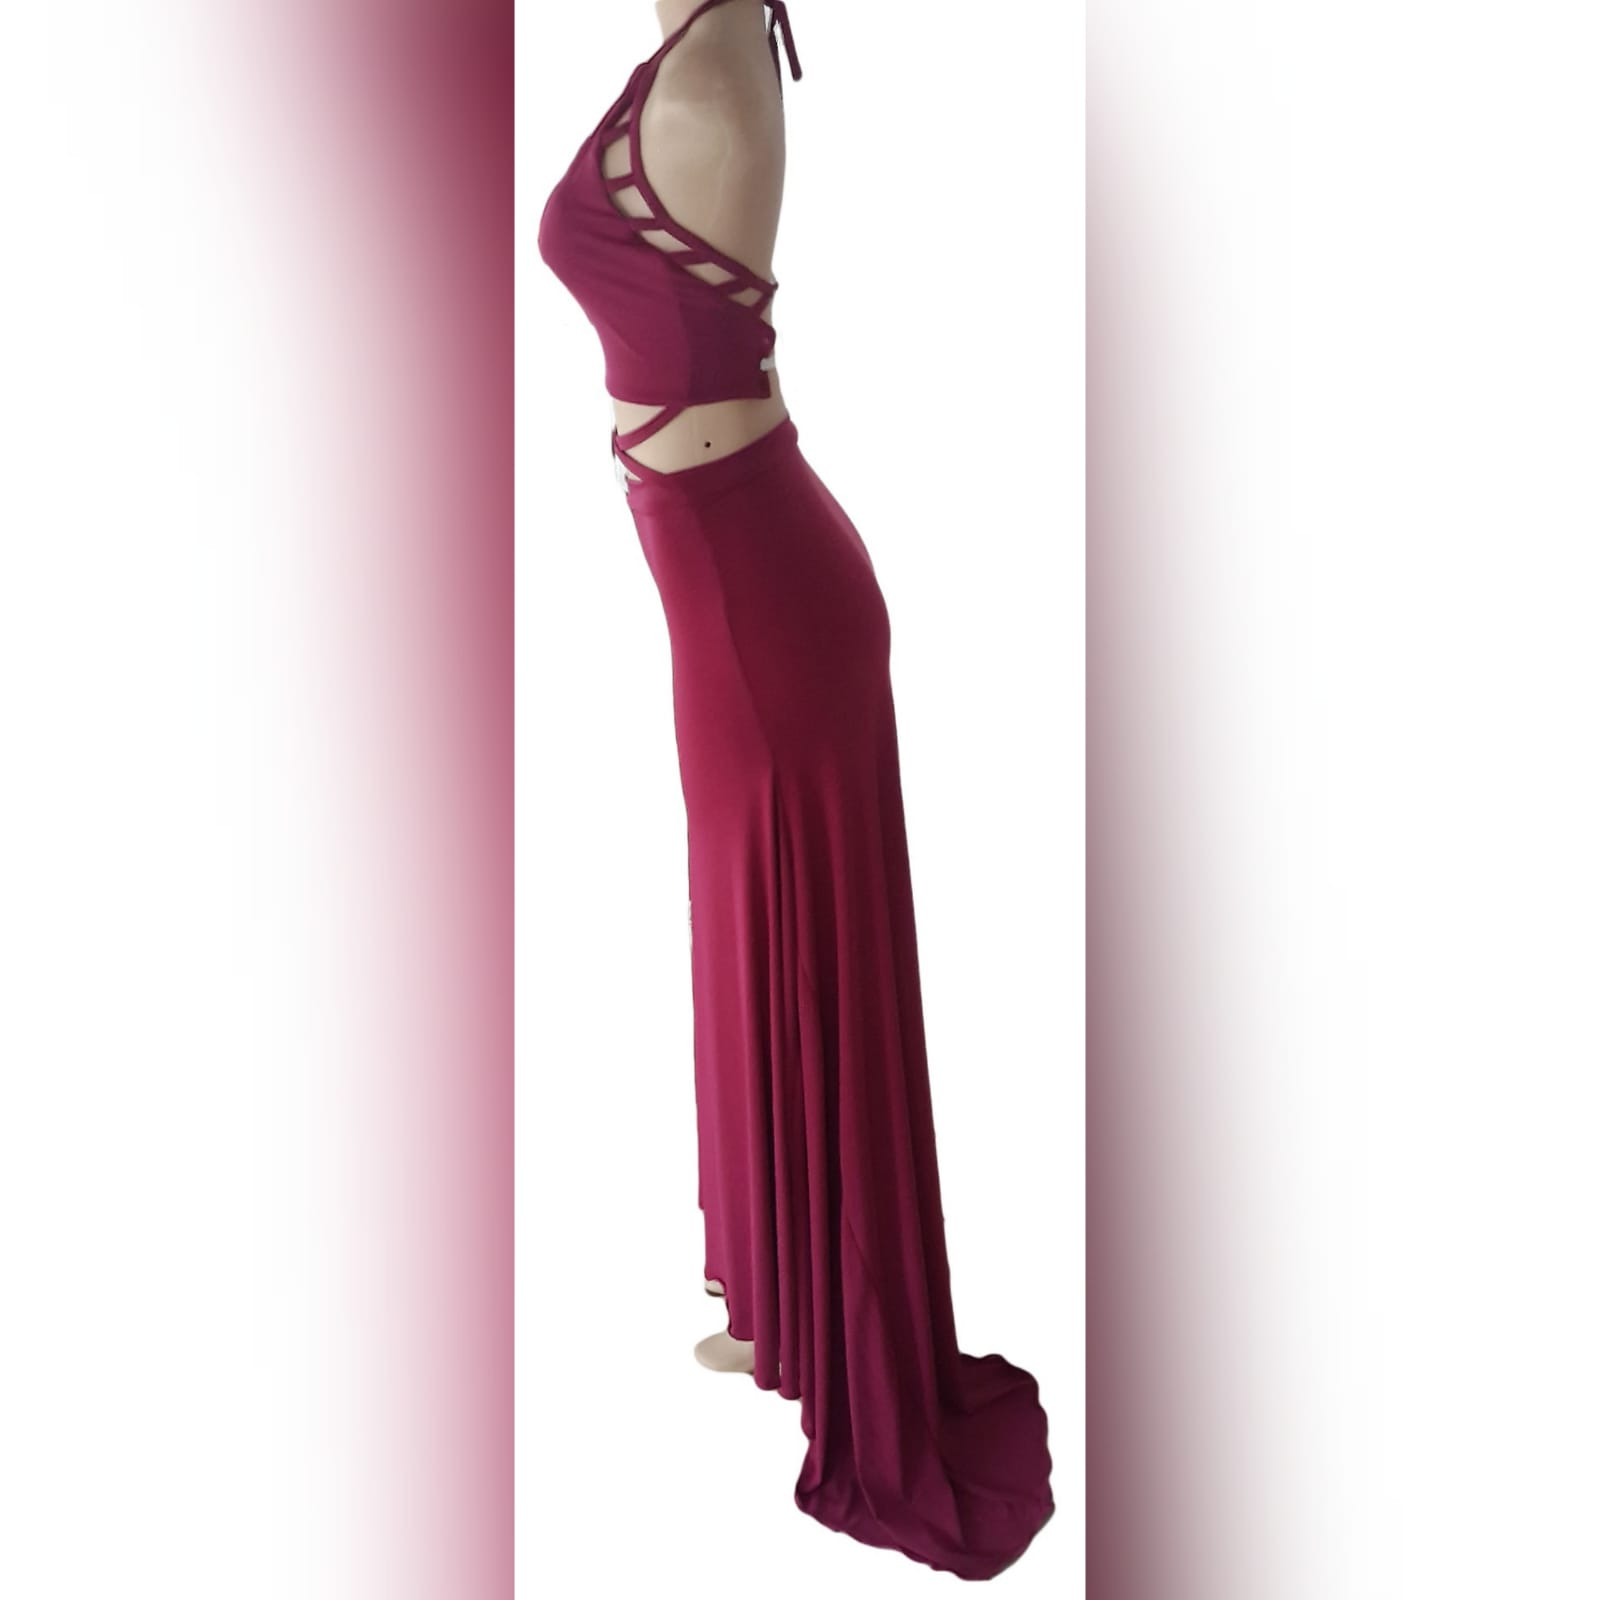 2 piece plum prom dance dress 7 2 piece plum prom dance dress. Halter neck crop top. Straps from the crop top create a cross that joins to the skirt. Skirt fitted till the hip and then very flowy with a long, wide train.